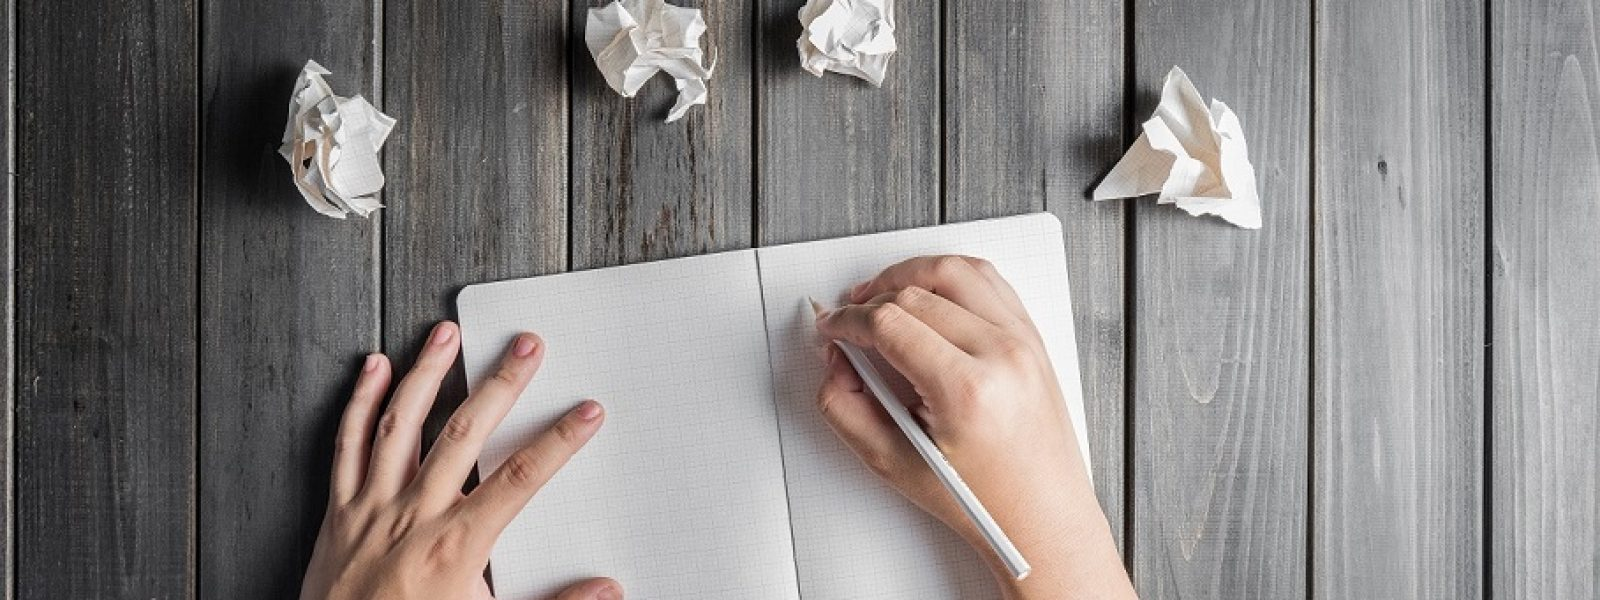 hands wresting the sheet of paper and making paper ball after mistake during writing top view